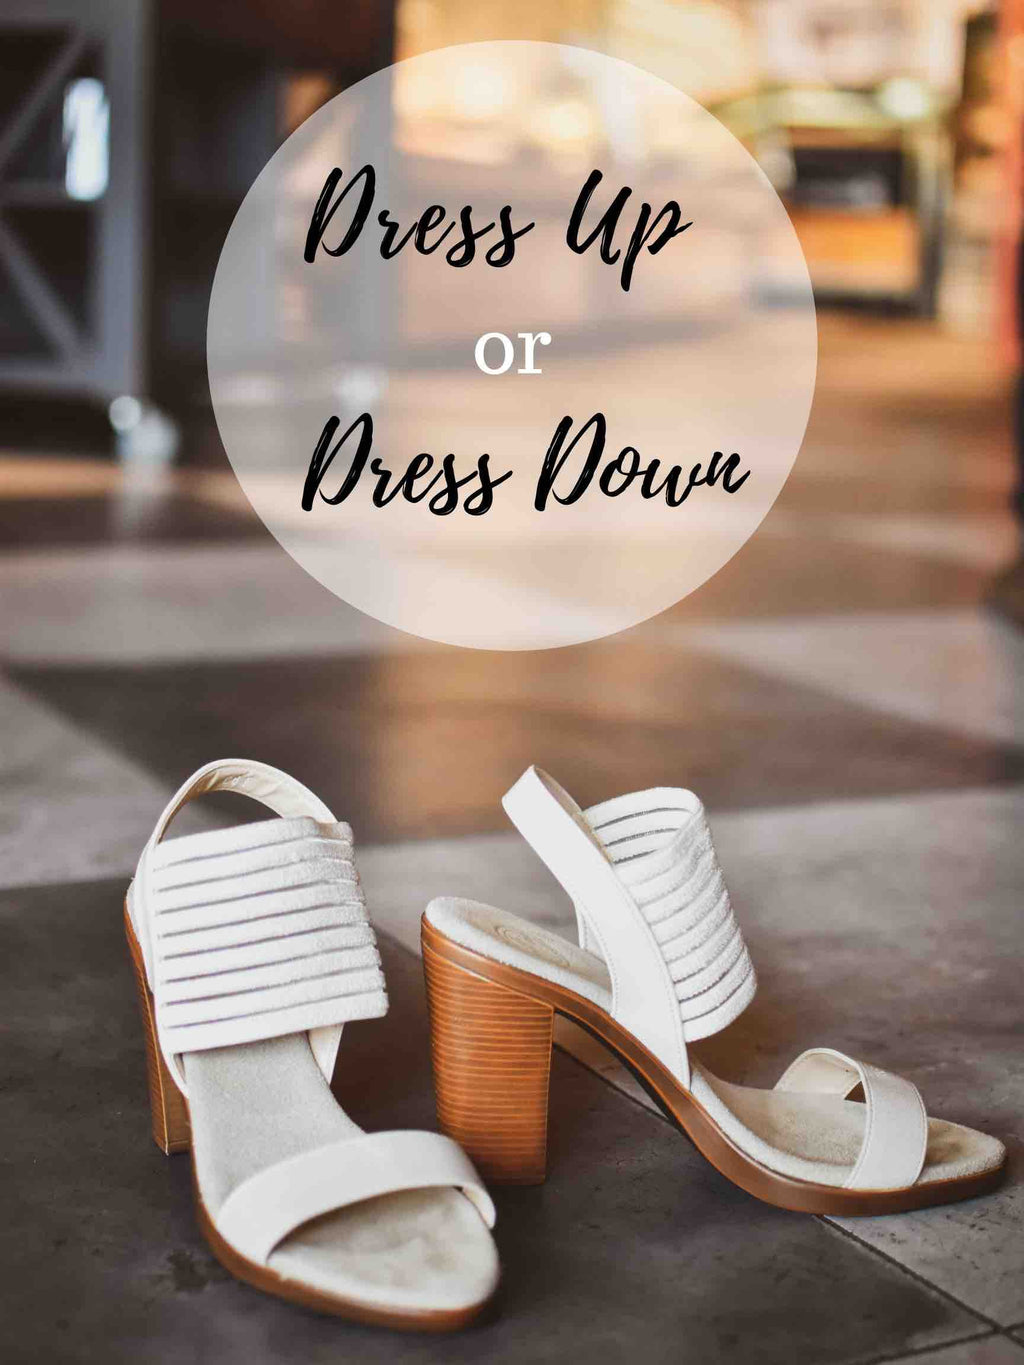 Dress Them Up or Dress Them Down